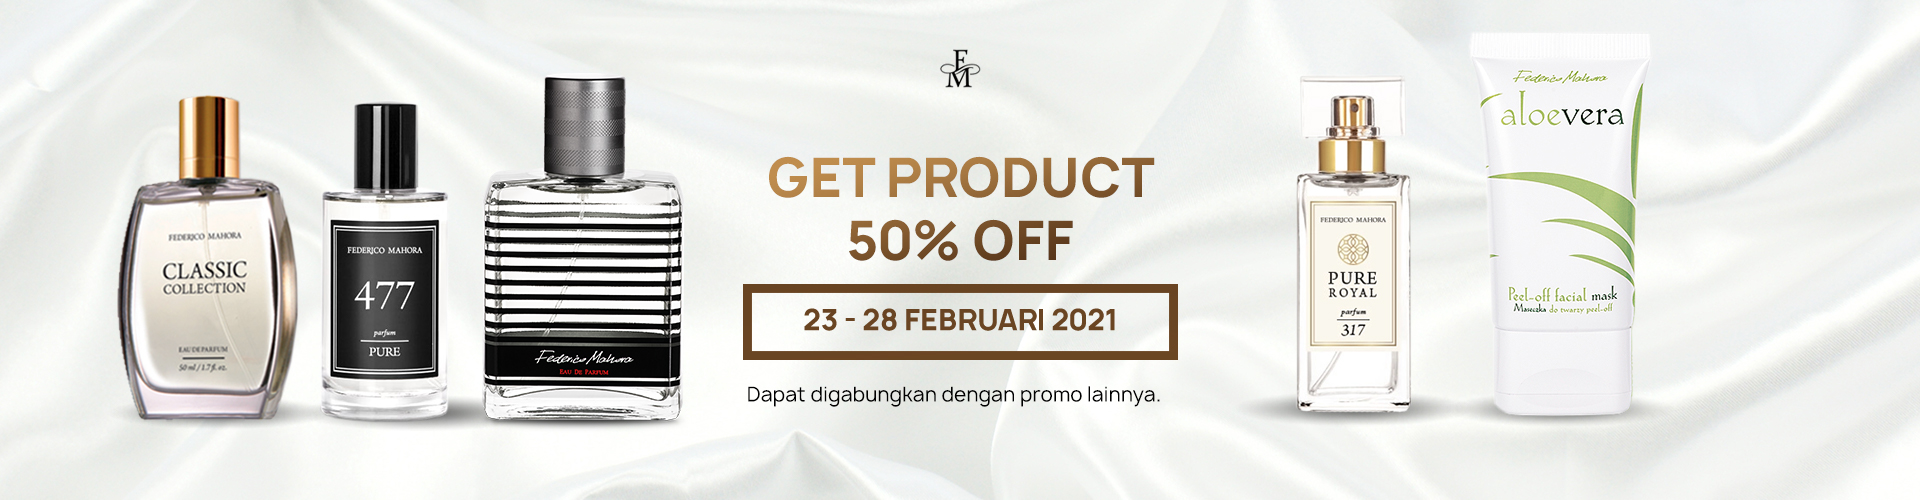 GET PRODUCT 50% OFF